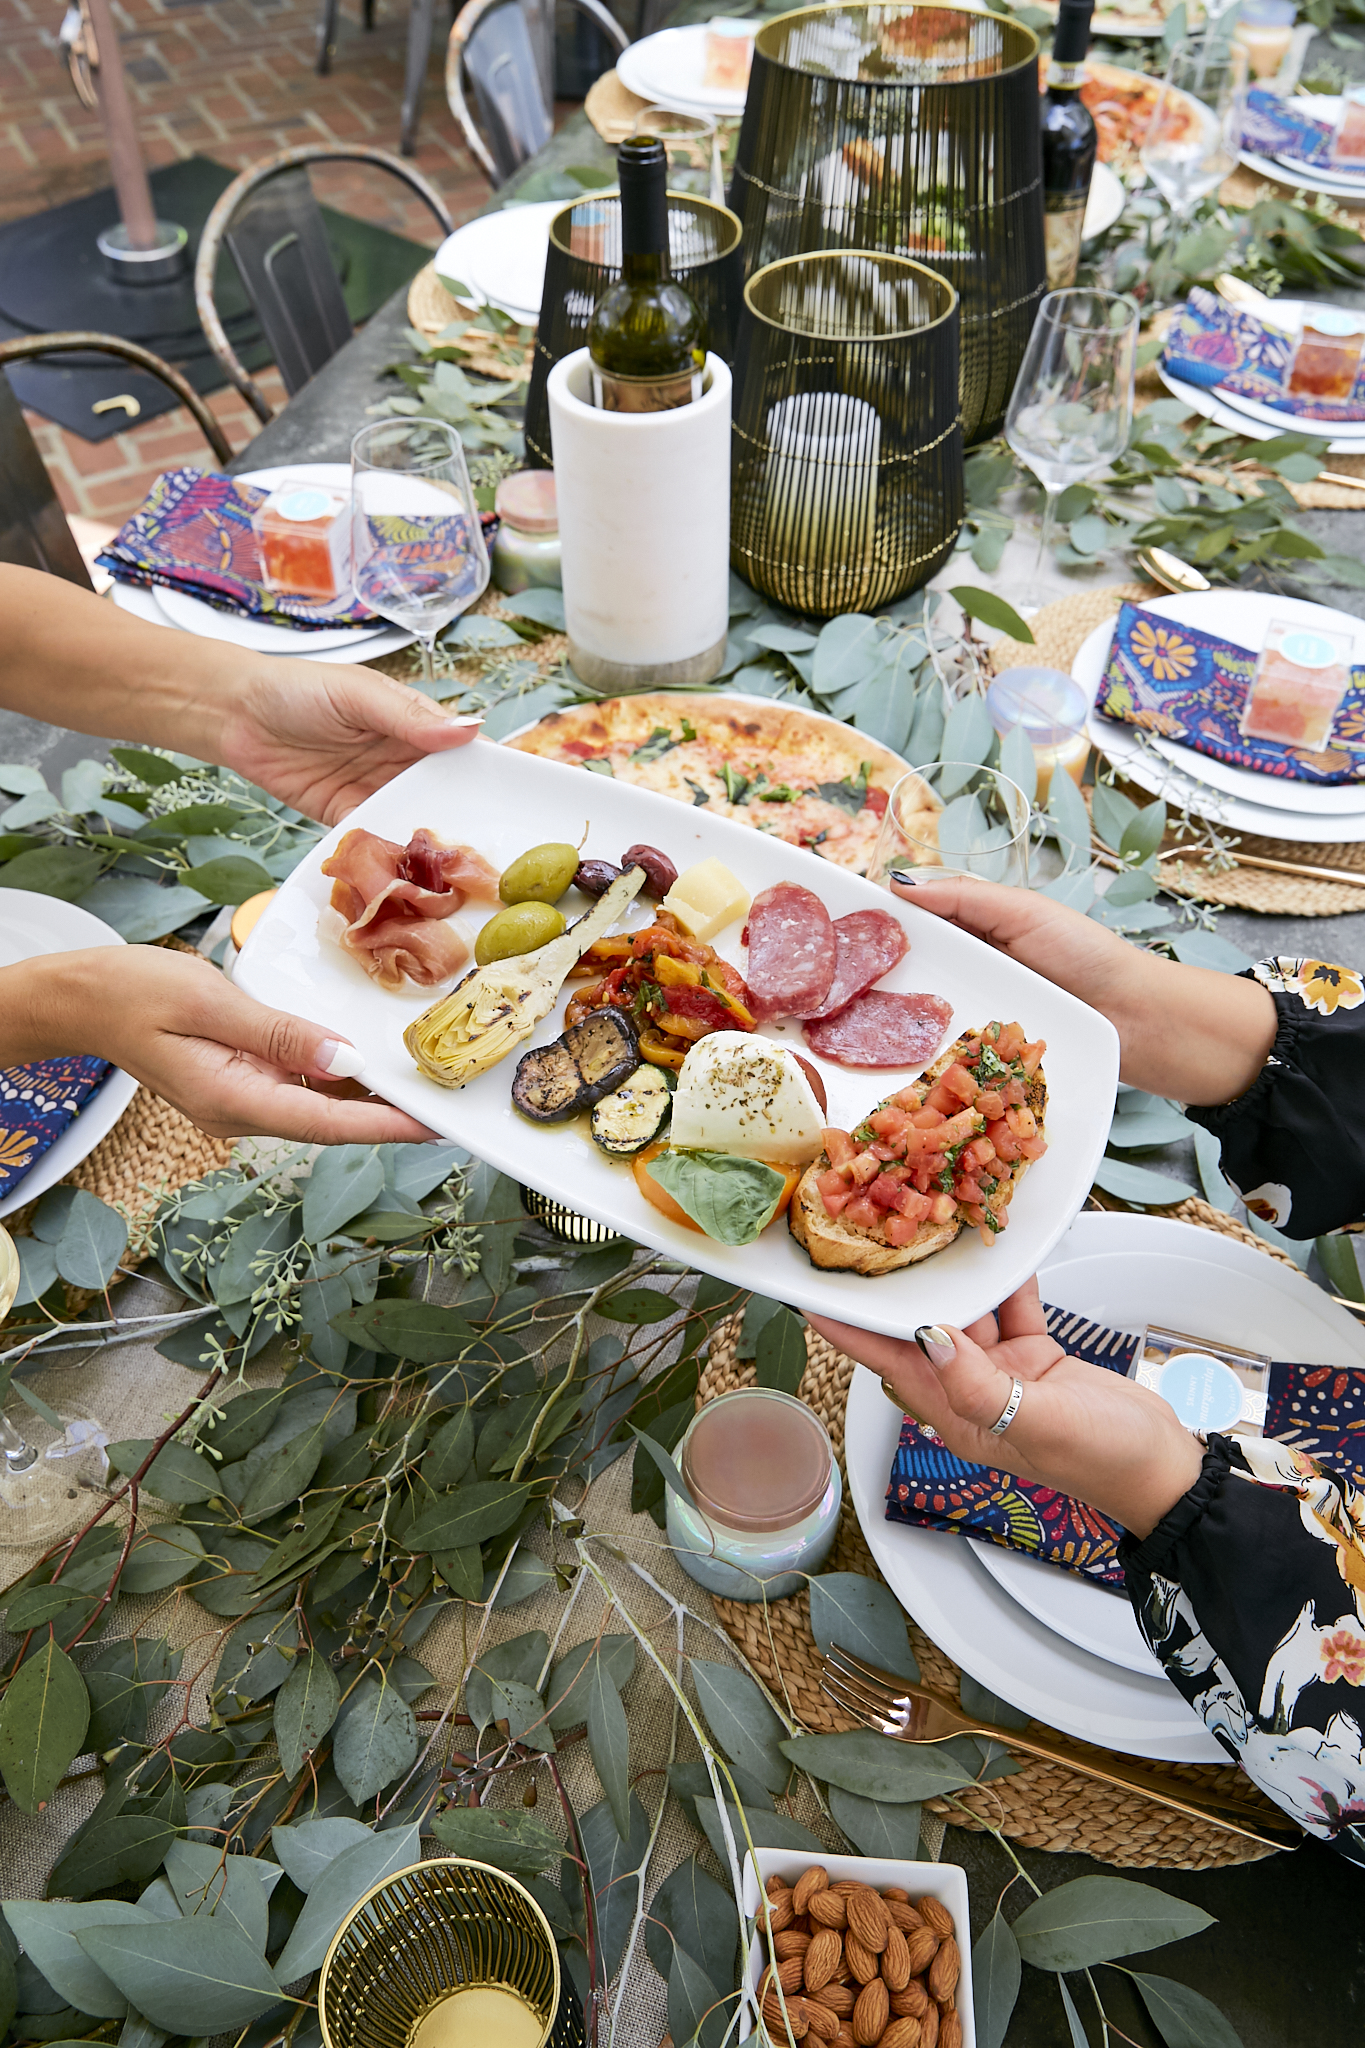 One Colorado's Guide to the Art of Entertaining